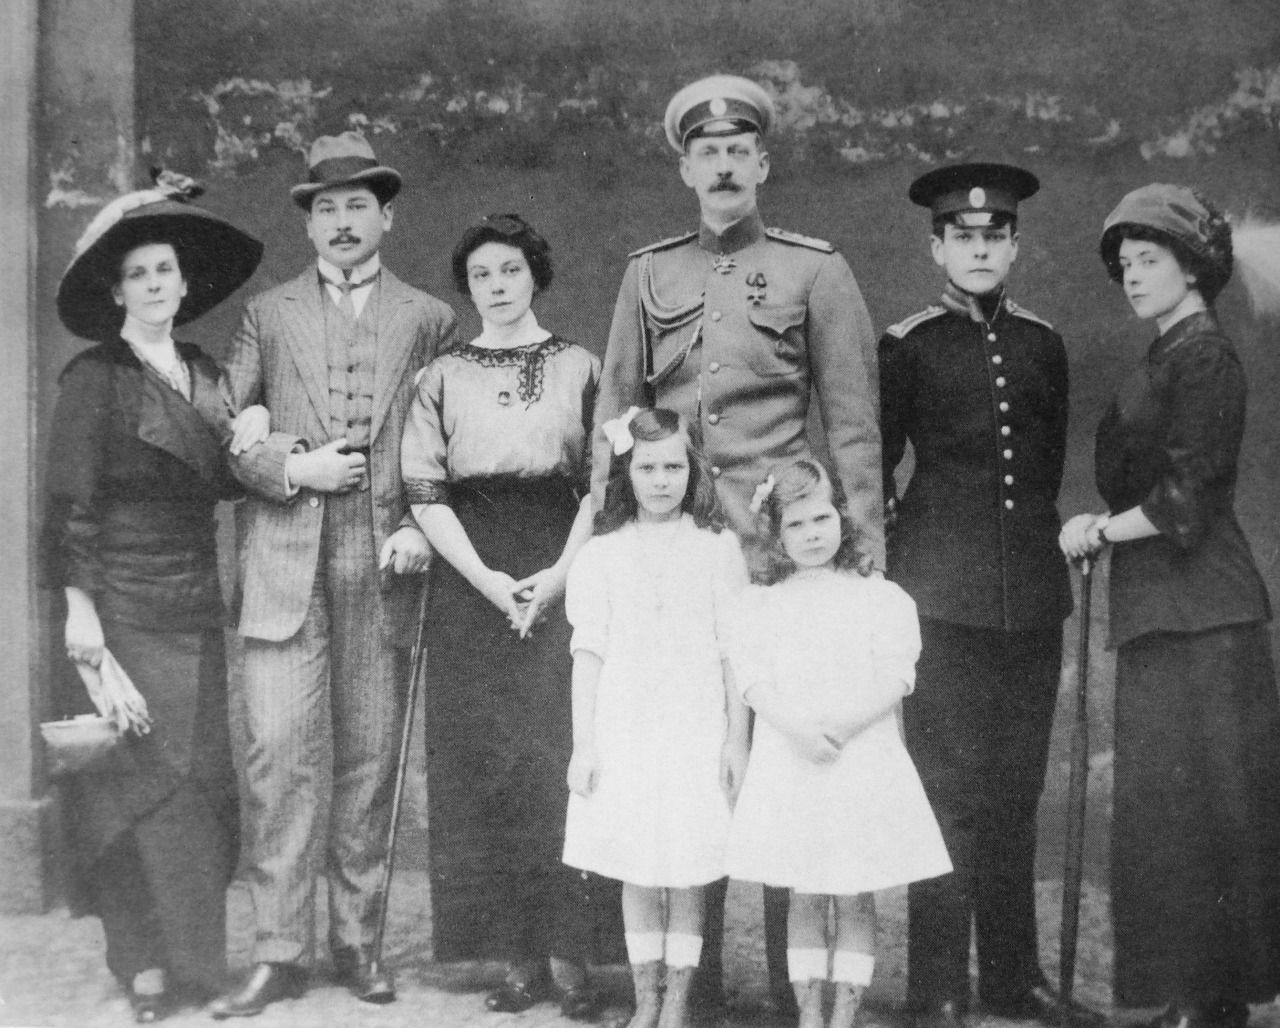 rom the left to rigth: Princess Olga Paley, her eldest son Alexander Erikovich, Olga Erikovna,Grand Duke Paul Alexandrovich of Russia,Princess Irina Paley,Princess Natalia Paley, Prince Vladimir Paley and Marianne Pistohlkors.